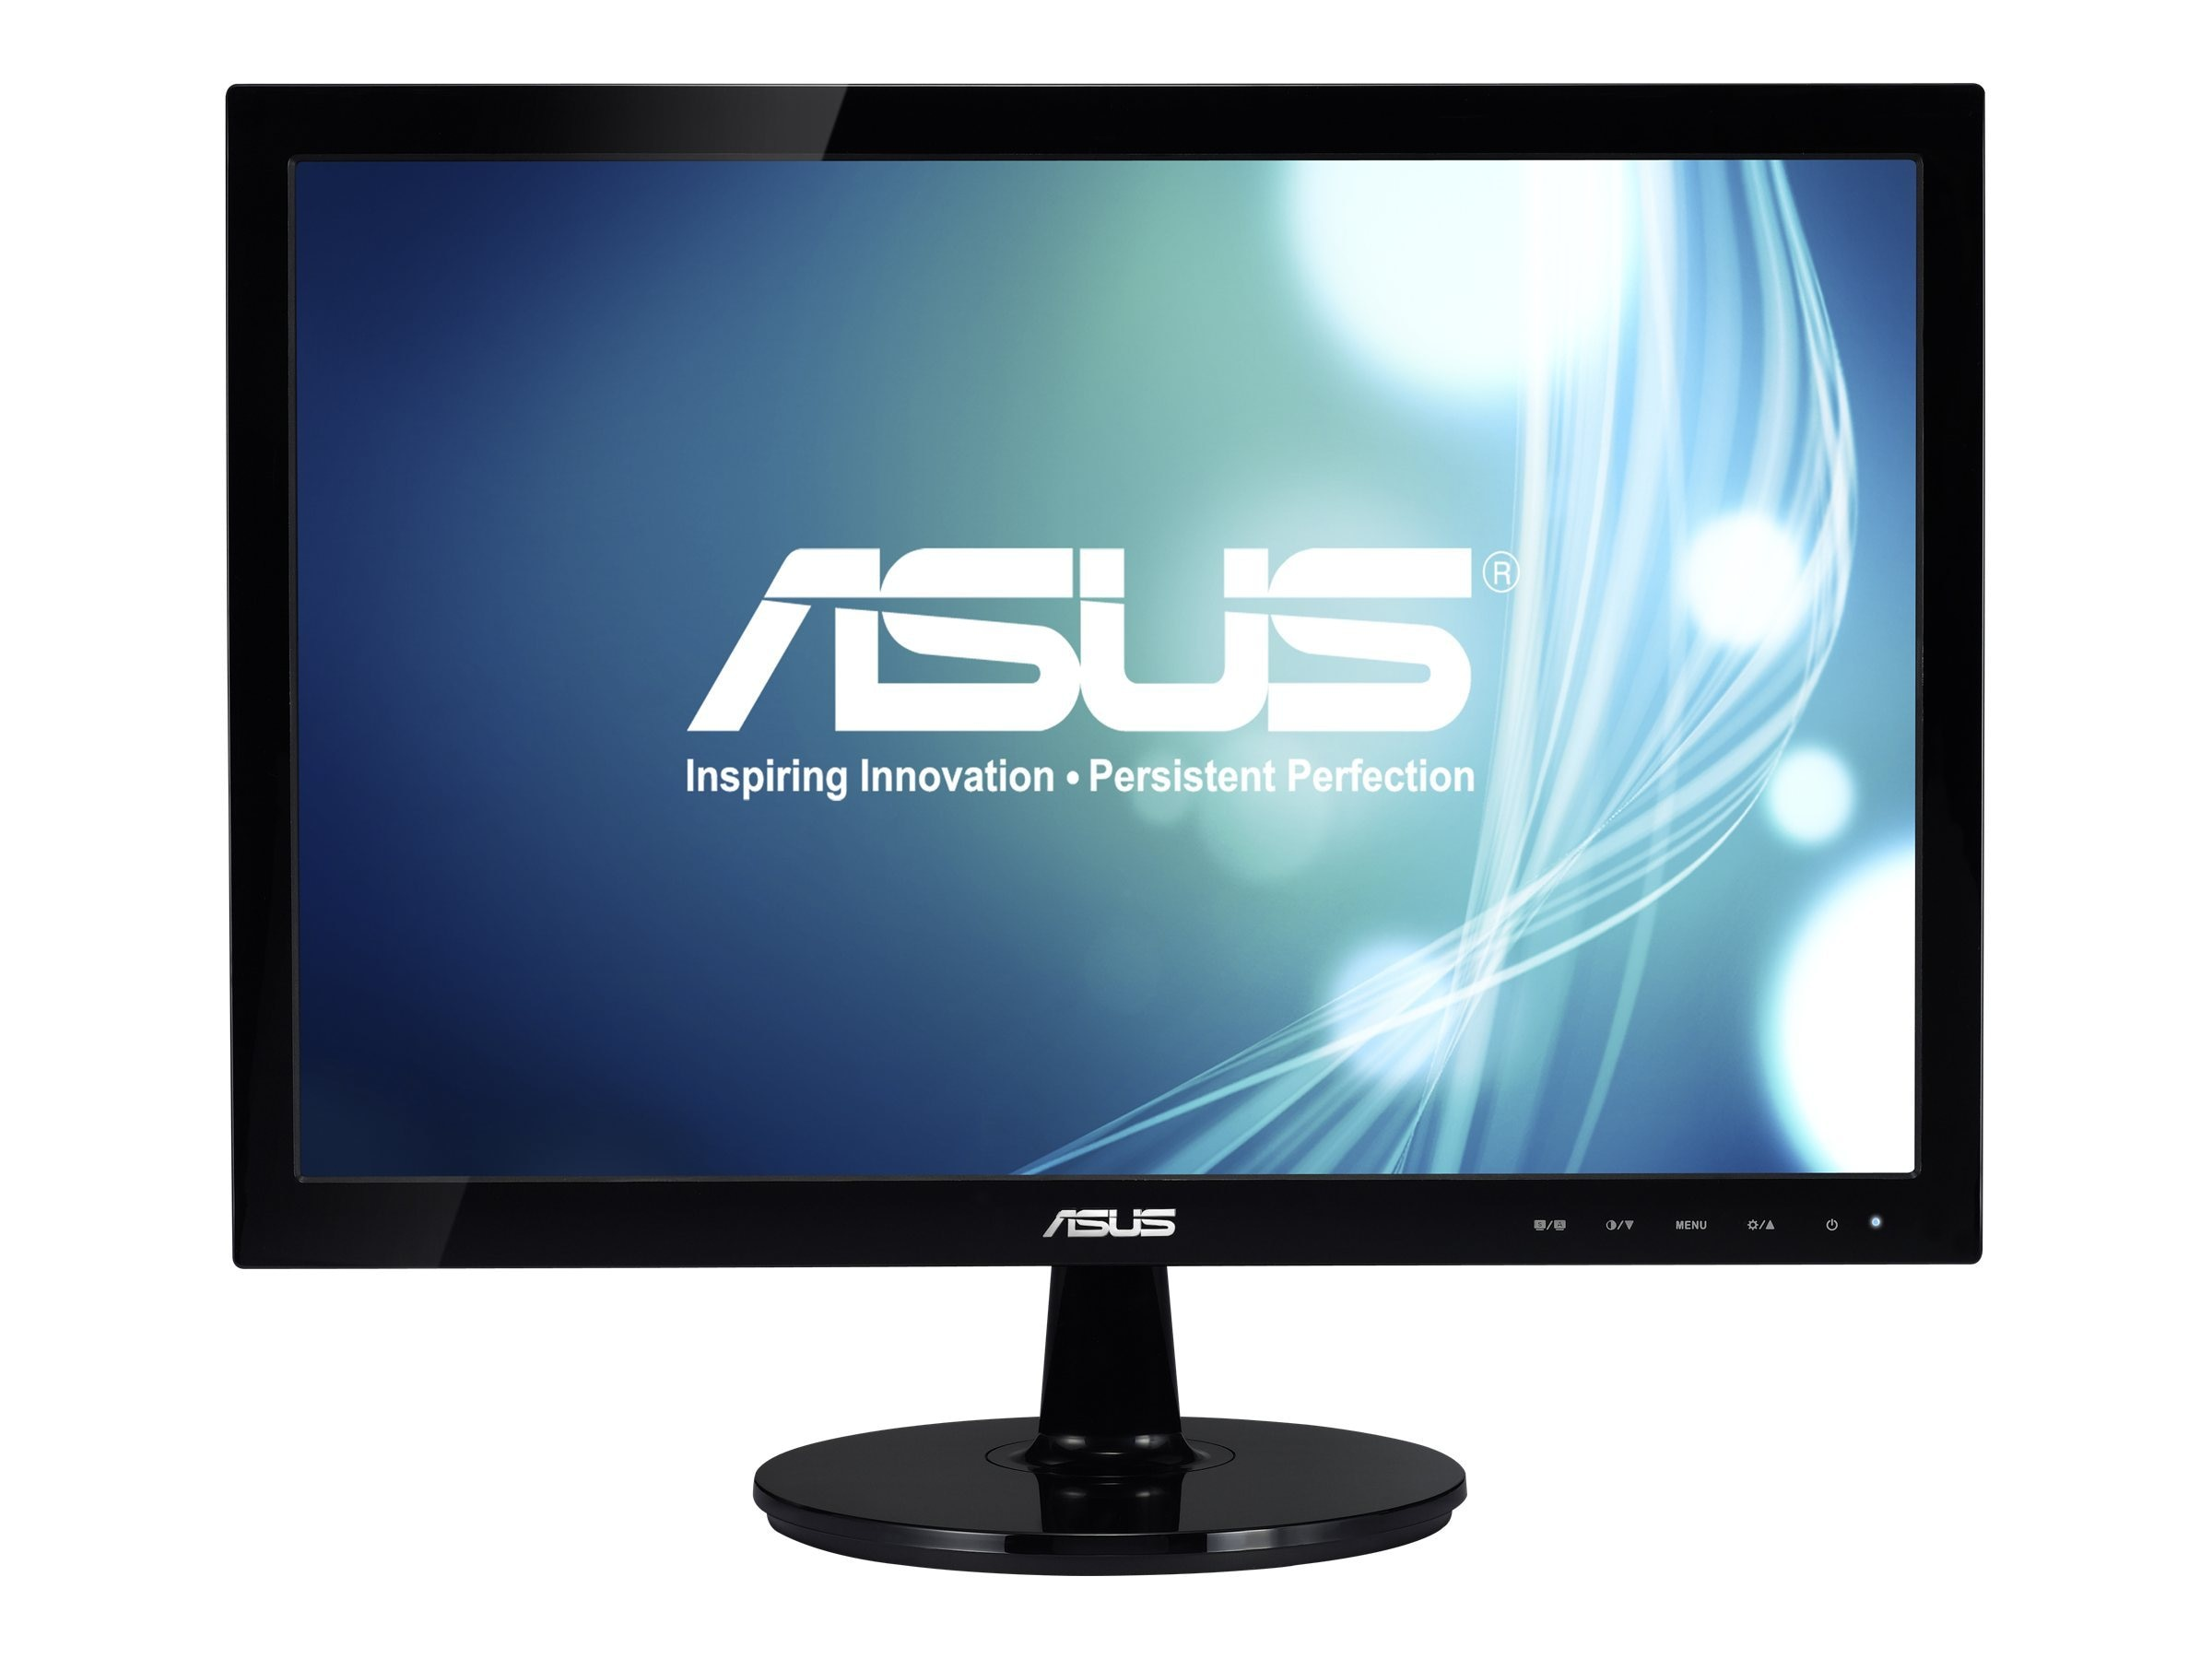 Asus 19 VS197D-P Widescreen LED-LCD Monitor, Black, VS197D-P, 13244688, Monitors - LED-LCD